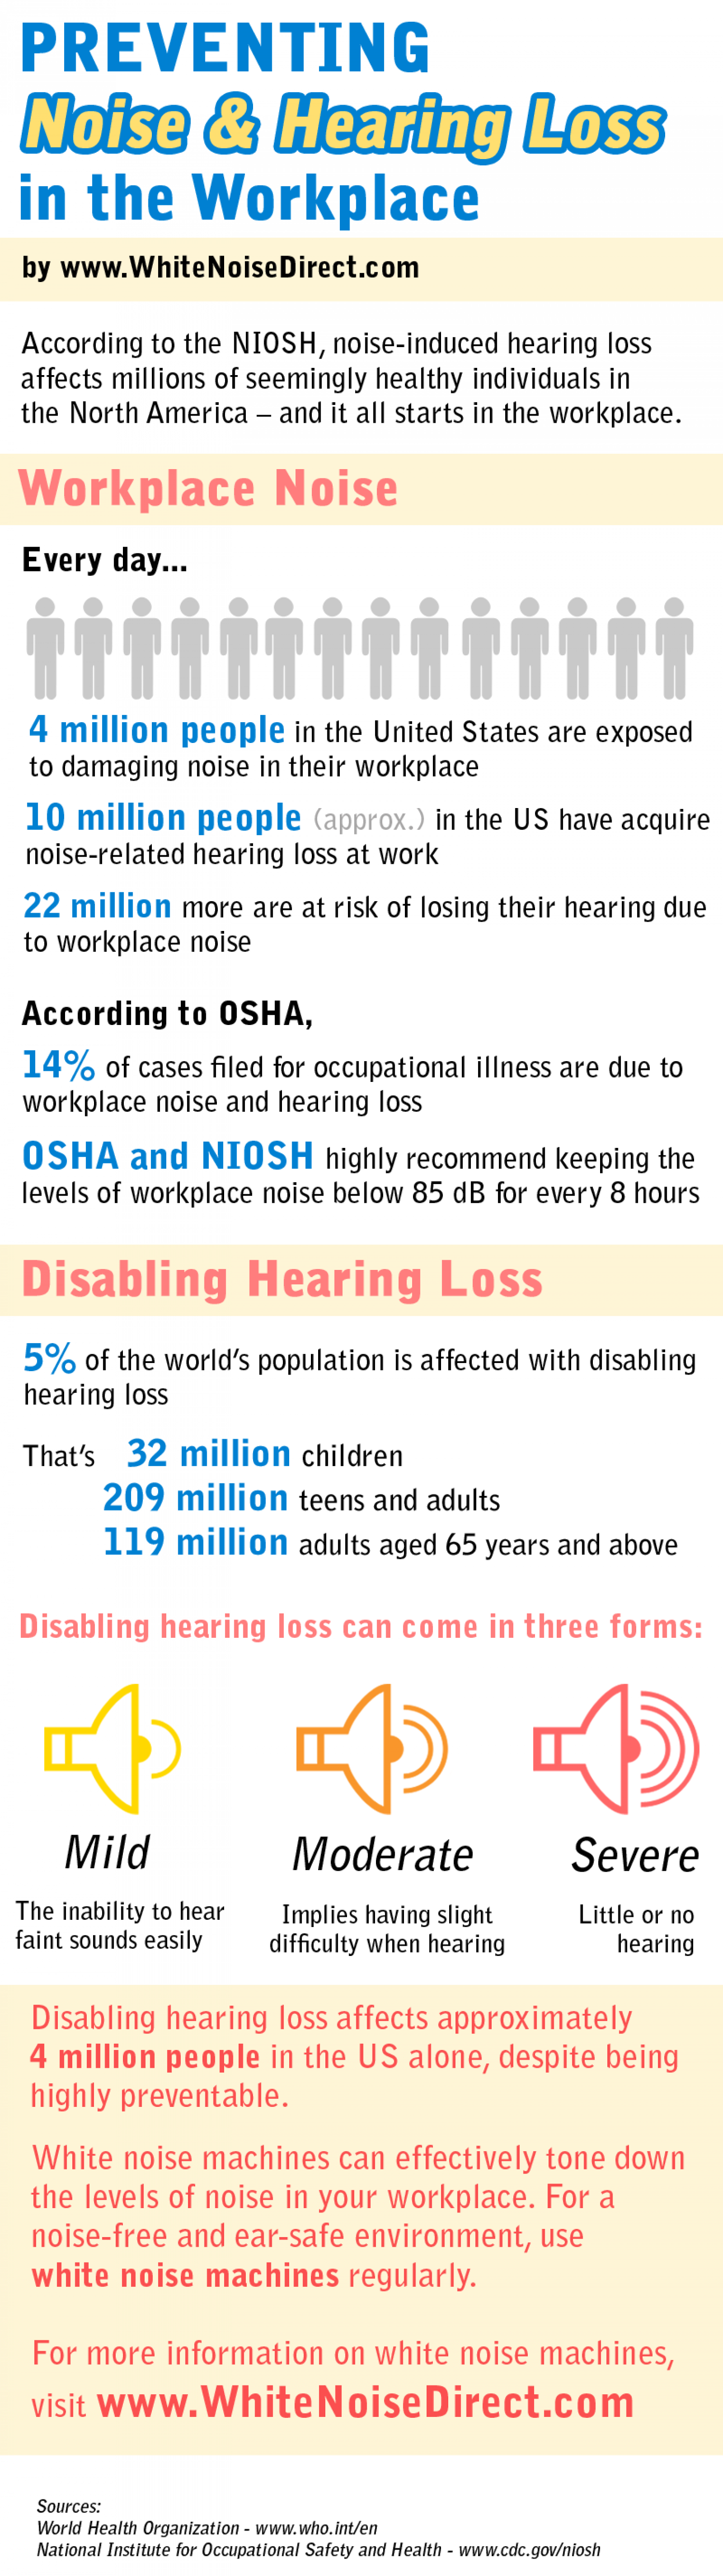 Preventing Noise and Hearing Loss in the Workplace Infographic